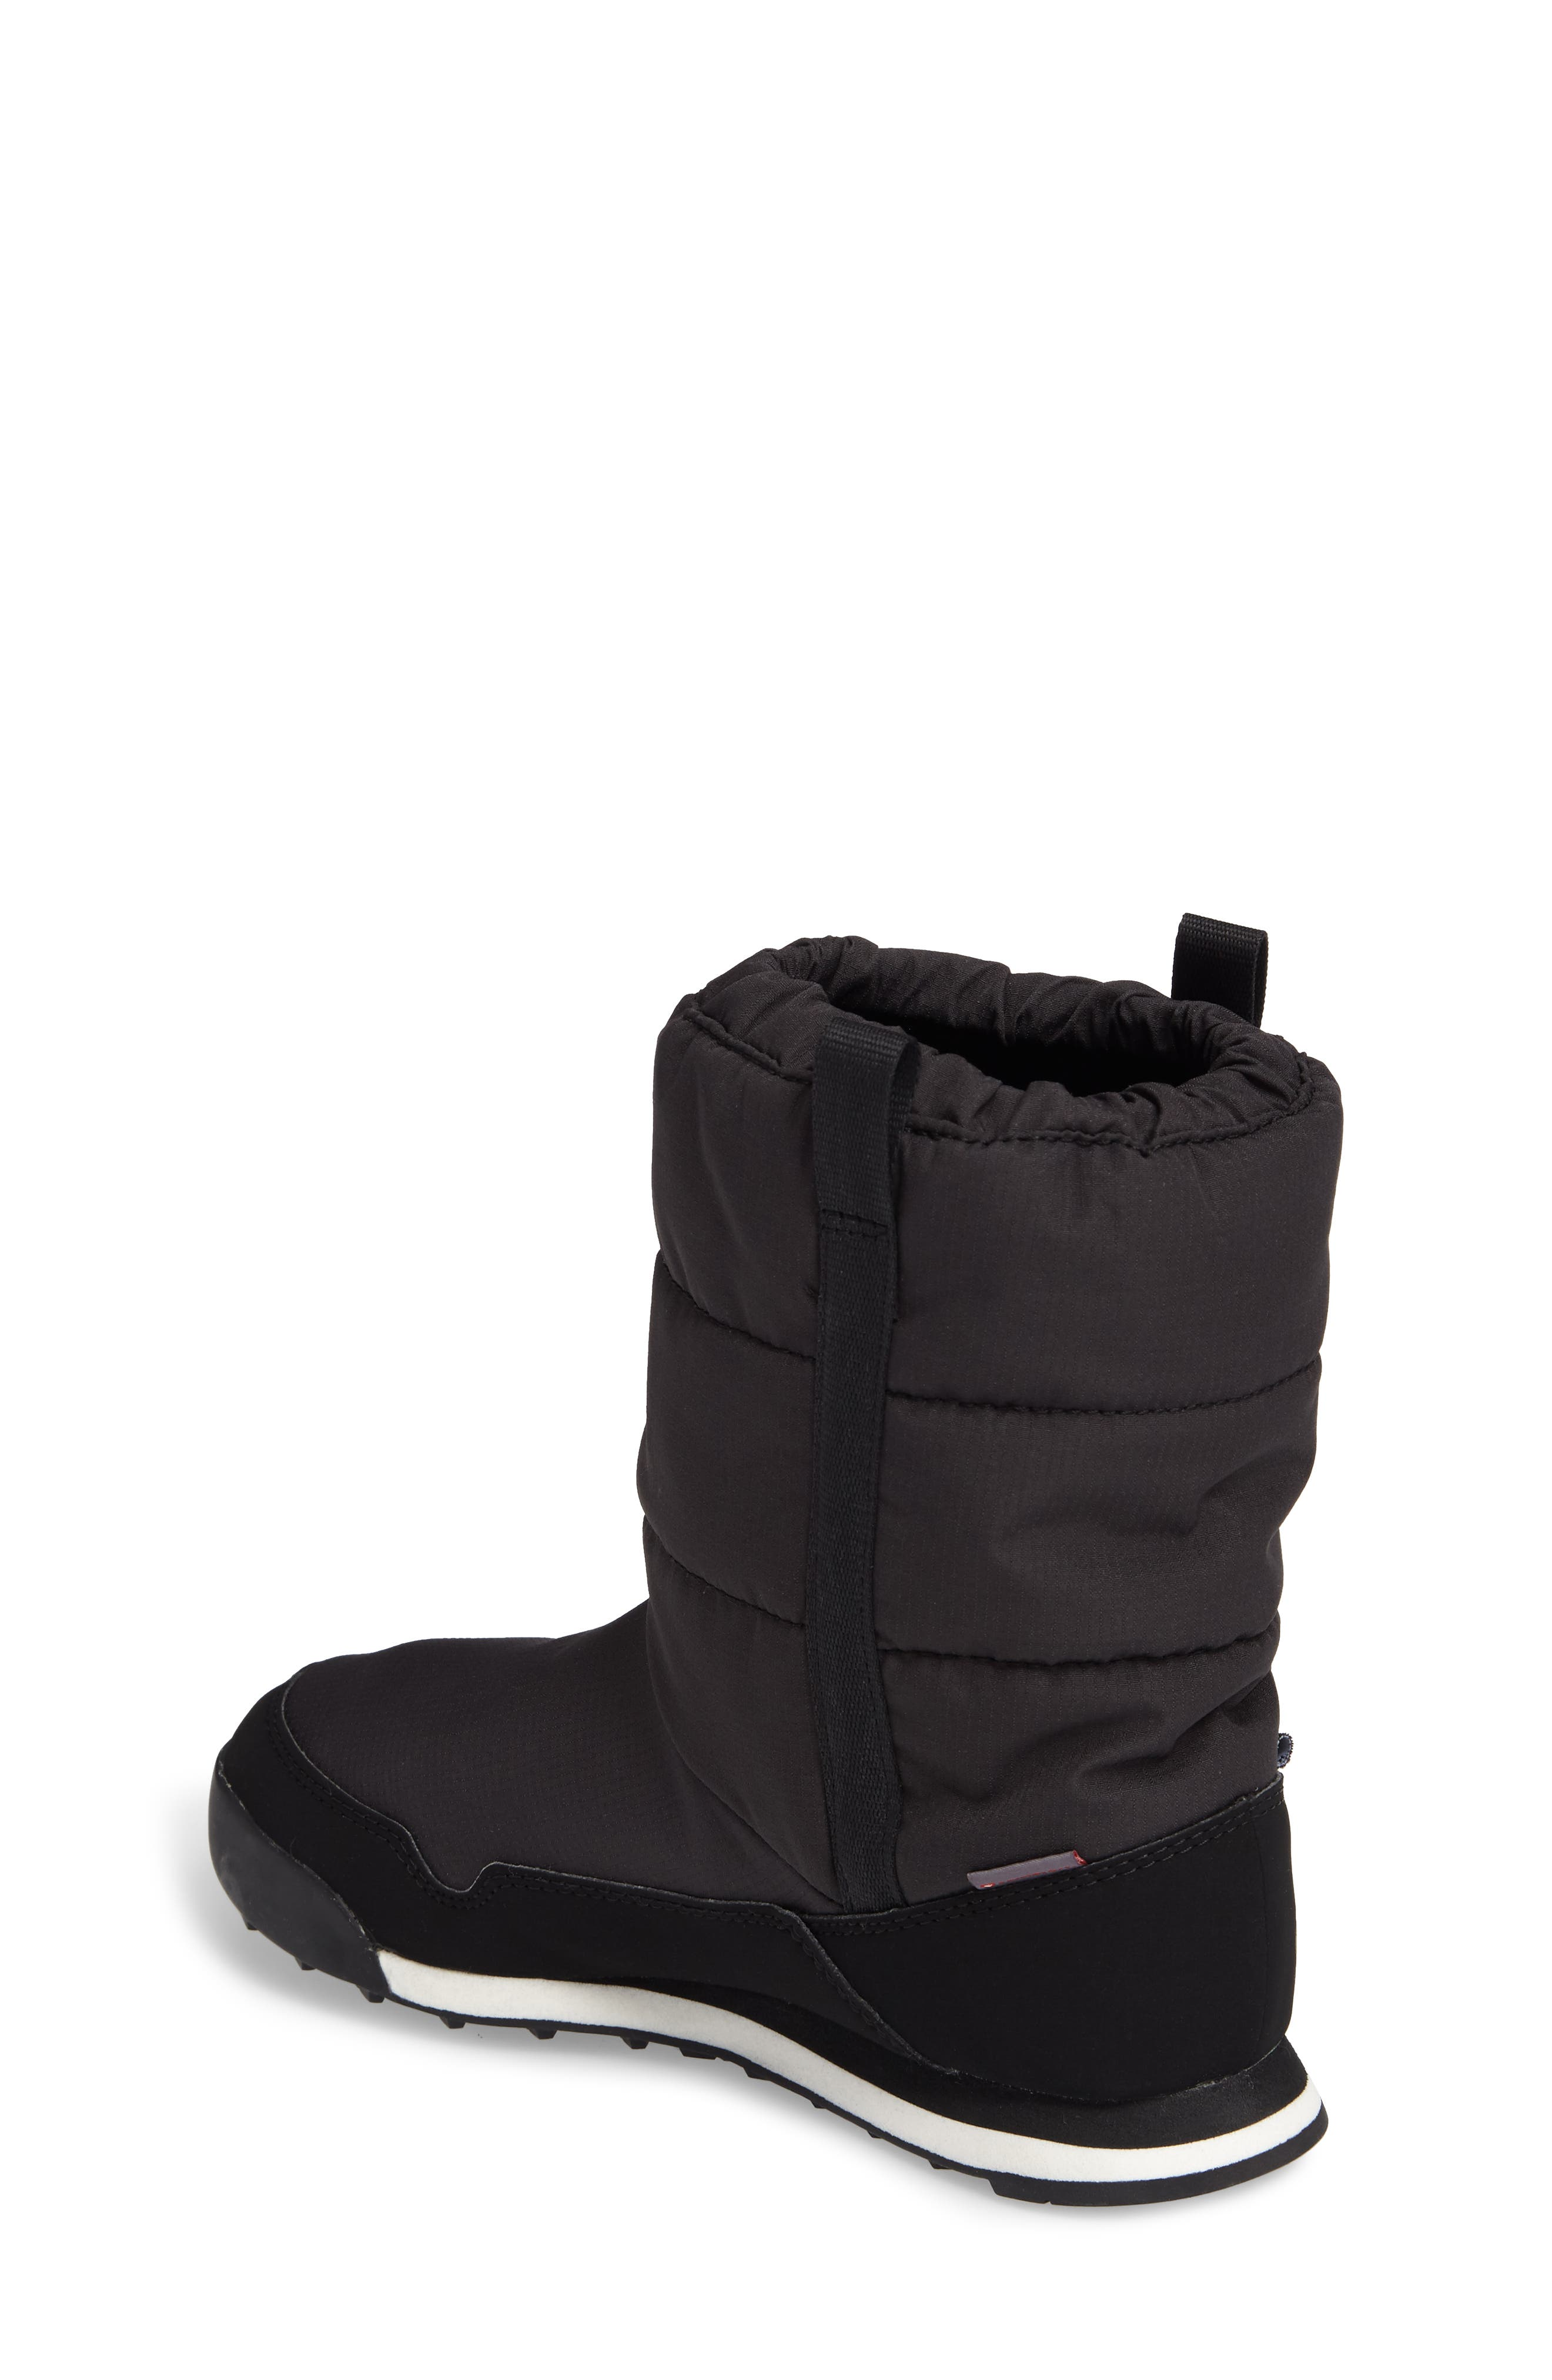 CW Snowpitch Insulated Waterproof Boot,                             Alternate thumbnail 2, color,                             BLACK/ BLACK/ CHALK WHITE